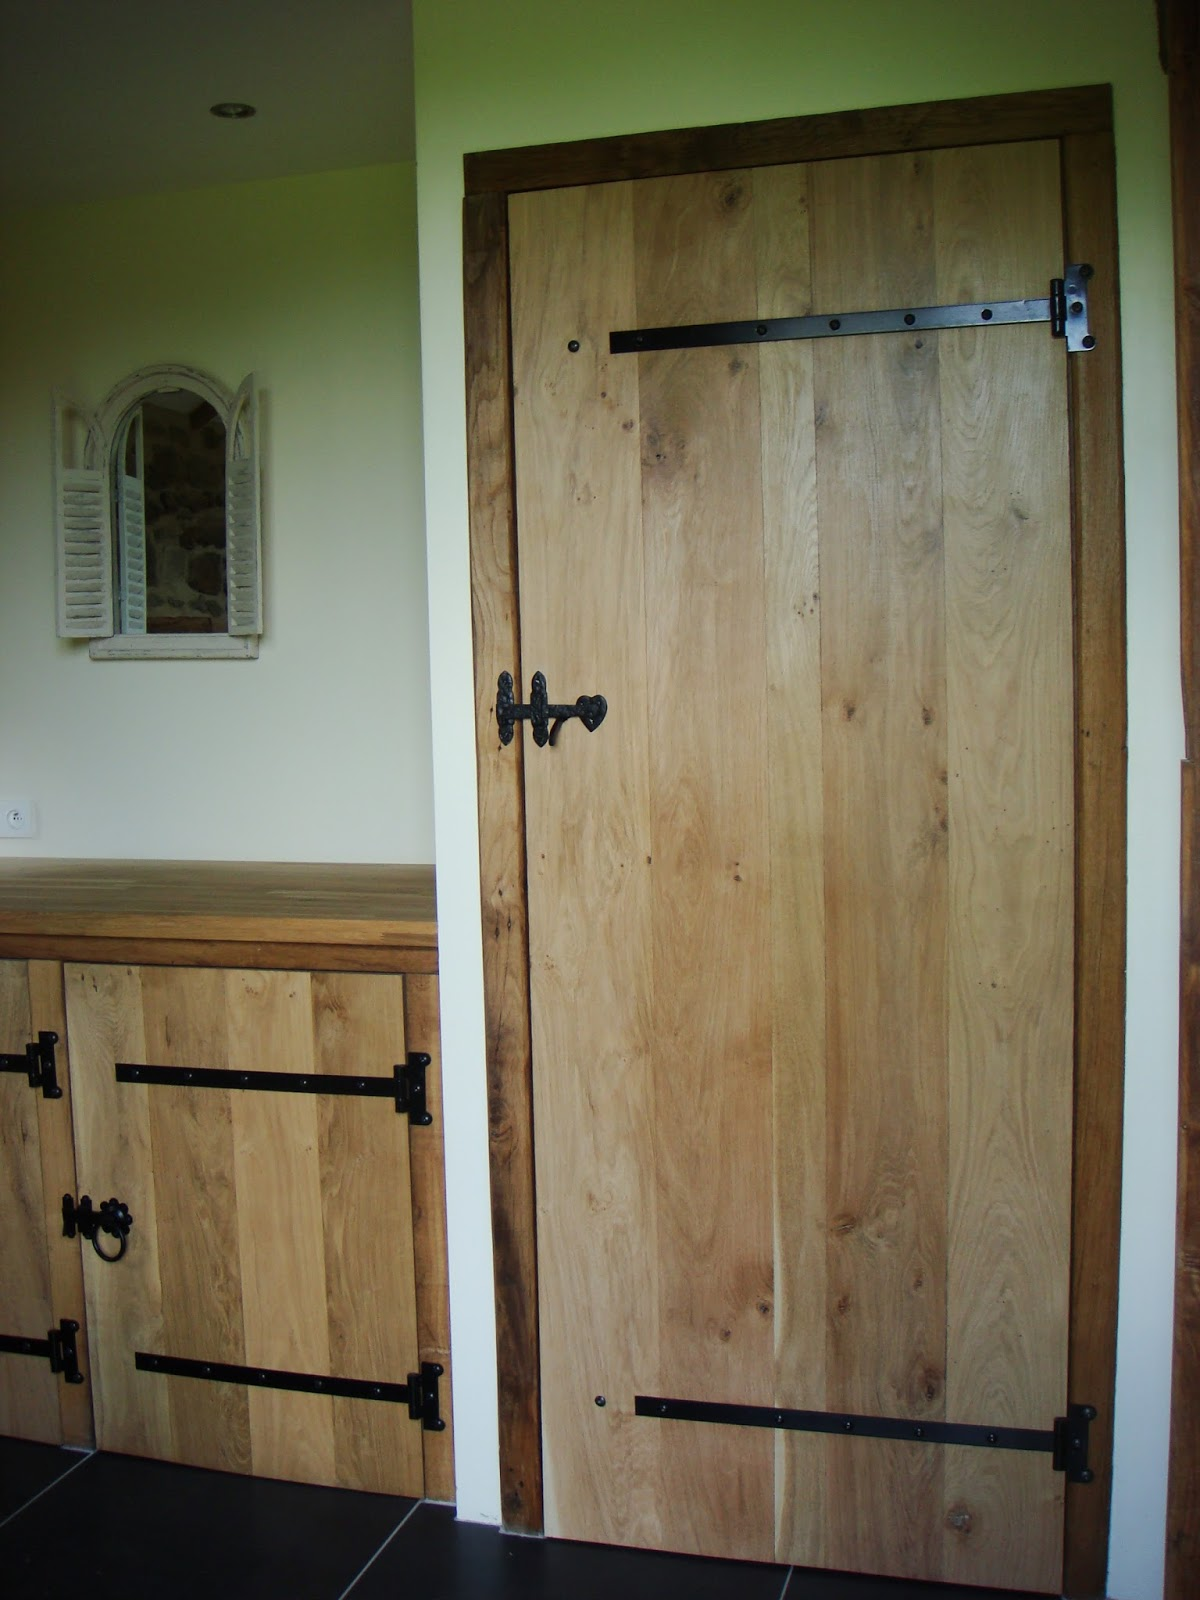 Ledge and brace oak doors - This Is The Same Door From Inside The Bathroom The Ledge And Brace Supports Are Made From Reclaimed Oak Beams Hand Planed So Some Variance Is Support